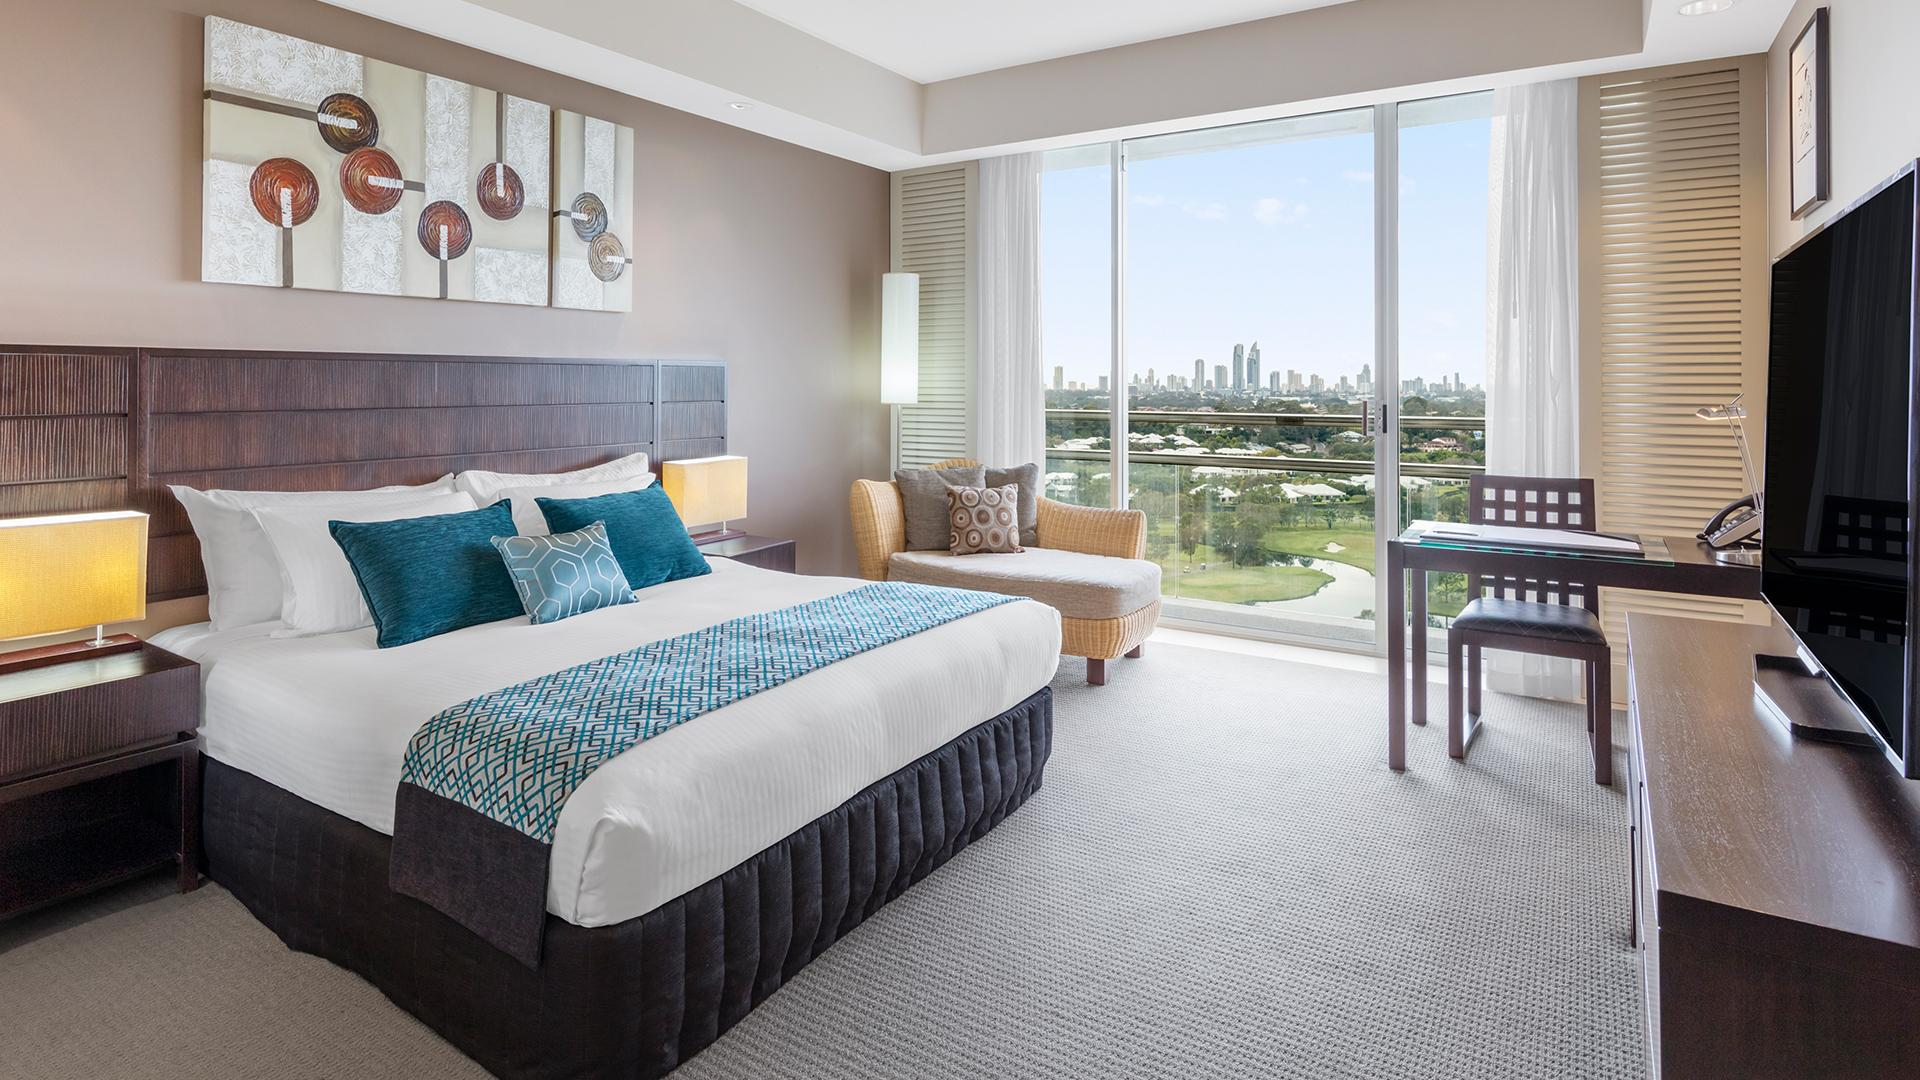 Executive King Room image 1 at RACV Royal Pines Resort by City of Gold Coast, Queensland, Australia